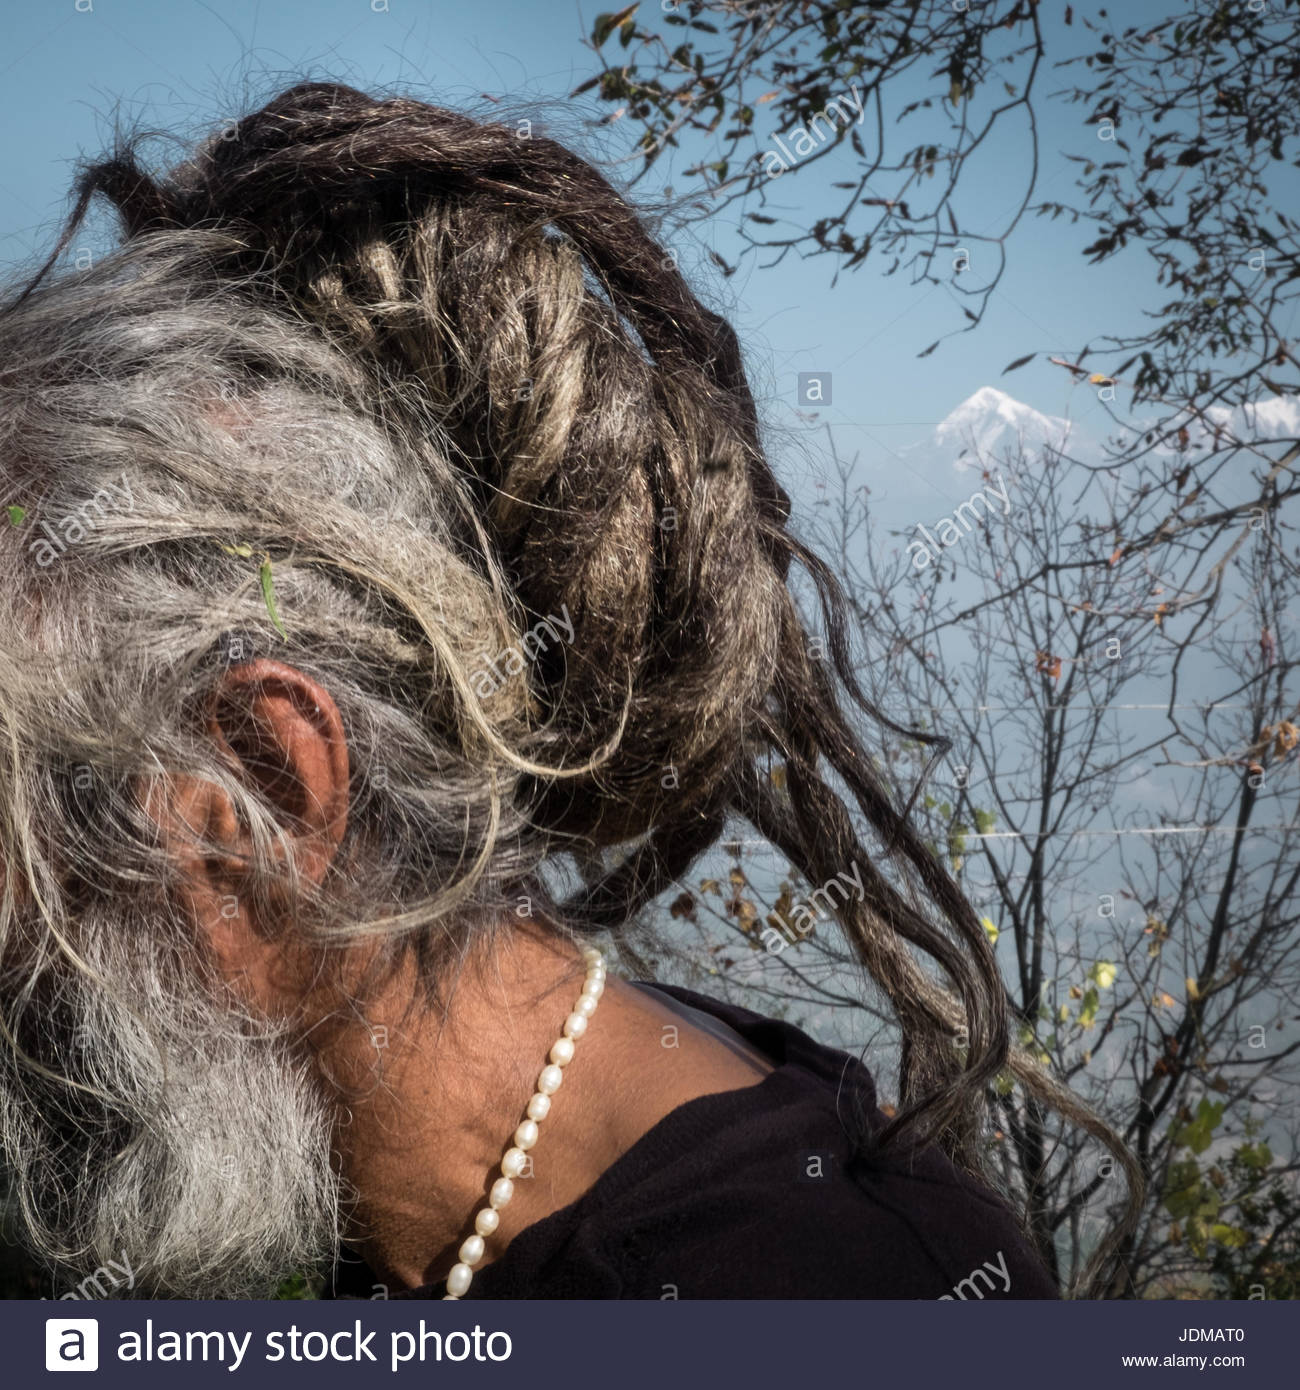 The dreadlocks of a Sadhu in the Himalayas. - Stock Image